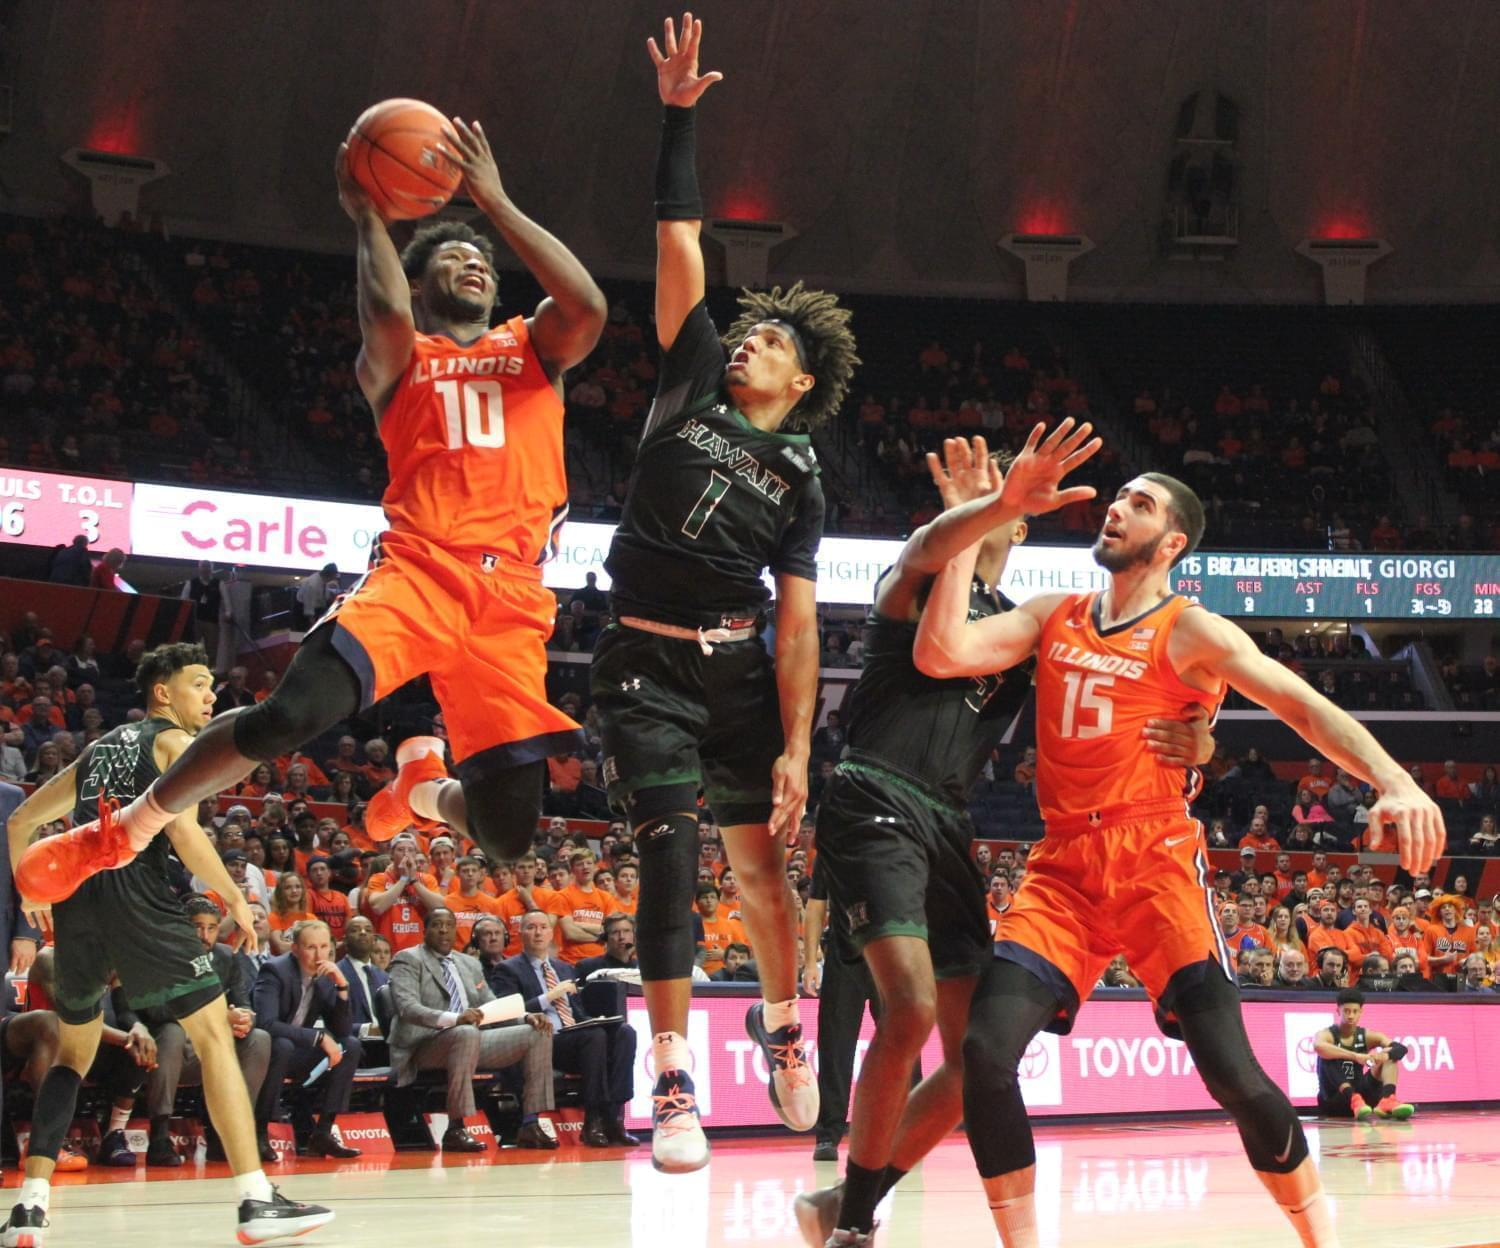 Andres Feliz of Illinois drives to the basket.